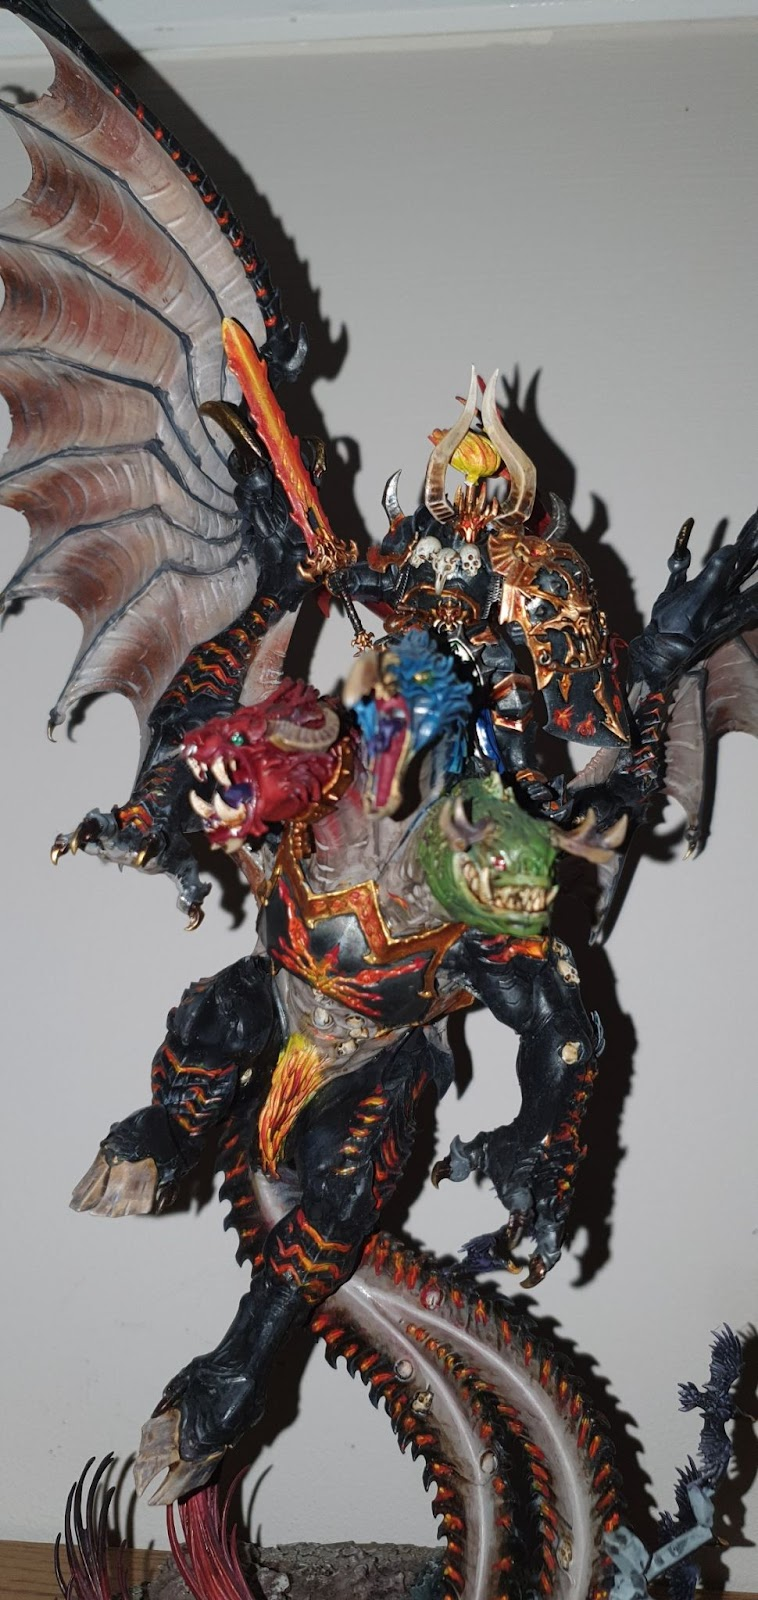 Archeon the Everchosen model.  Painted black and flesh coloured with glowing red to orange runes and flame effects.